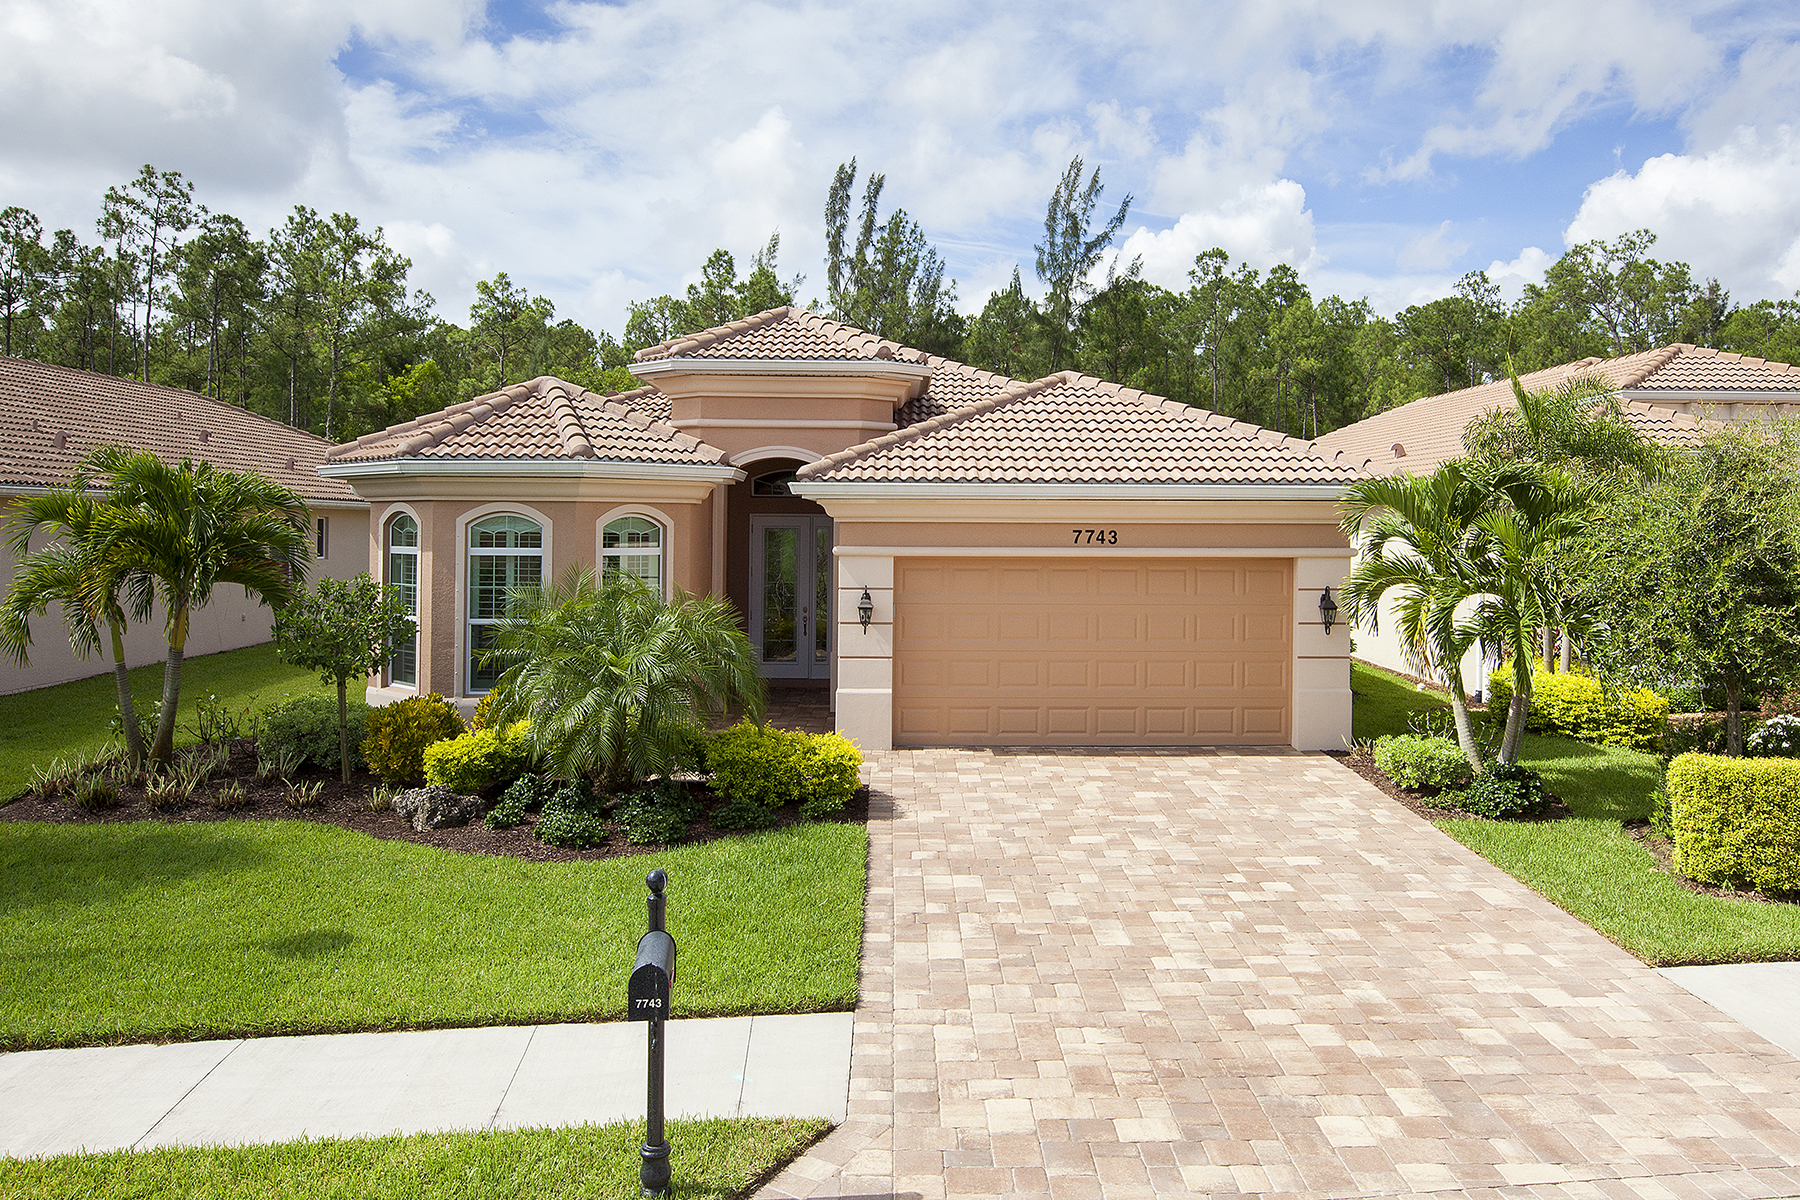 Single Family Home for Sale at Naples 7743 Martino Cir Naples, Florida, 34112 United States